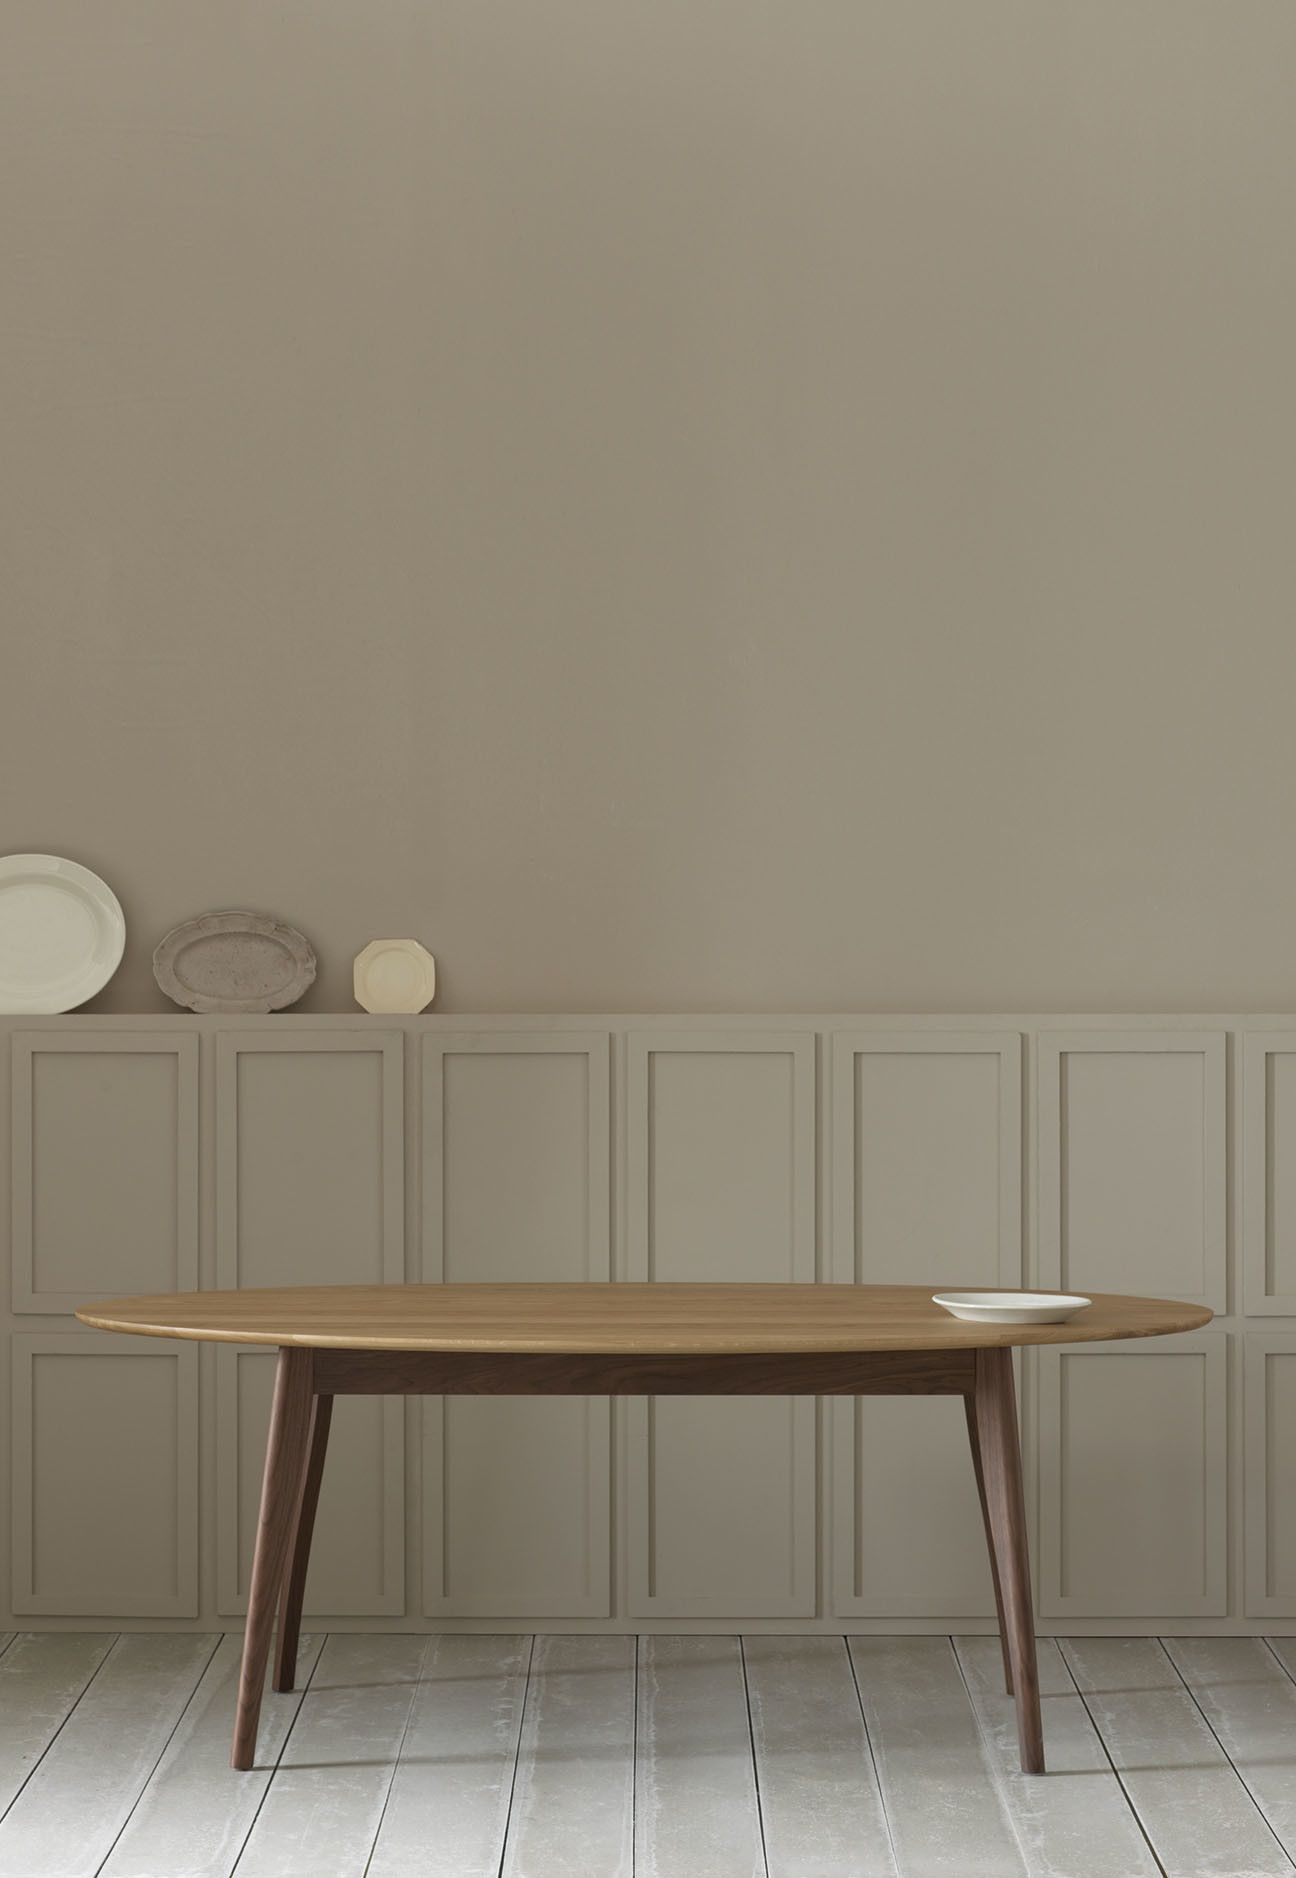 Contemporary Modern Dining Table With Splayed Legs And An Oval Top Harper From Pinch Design